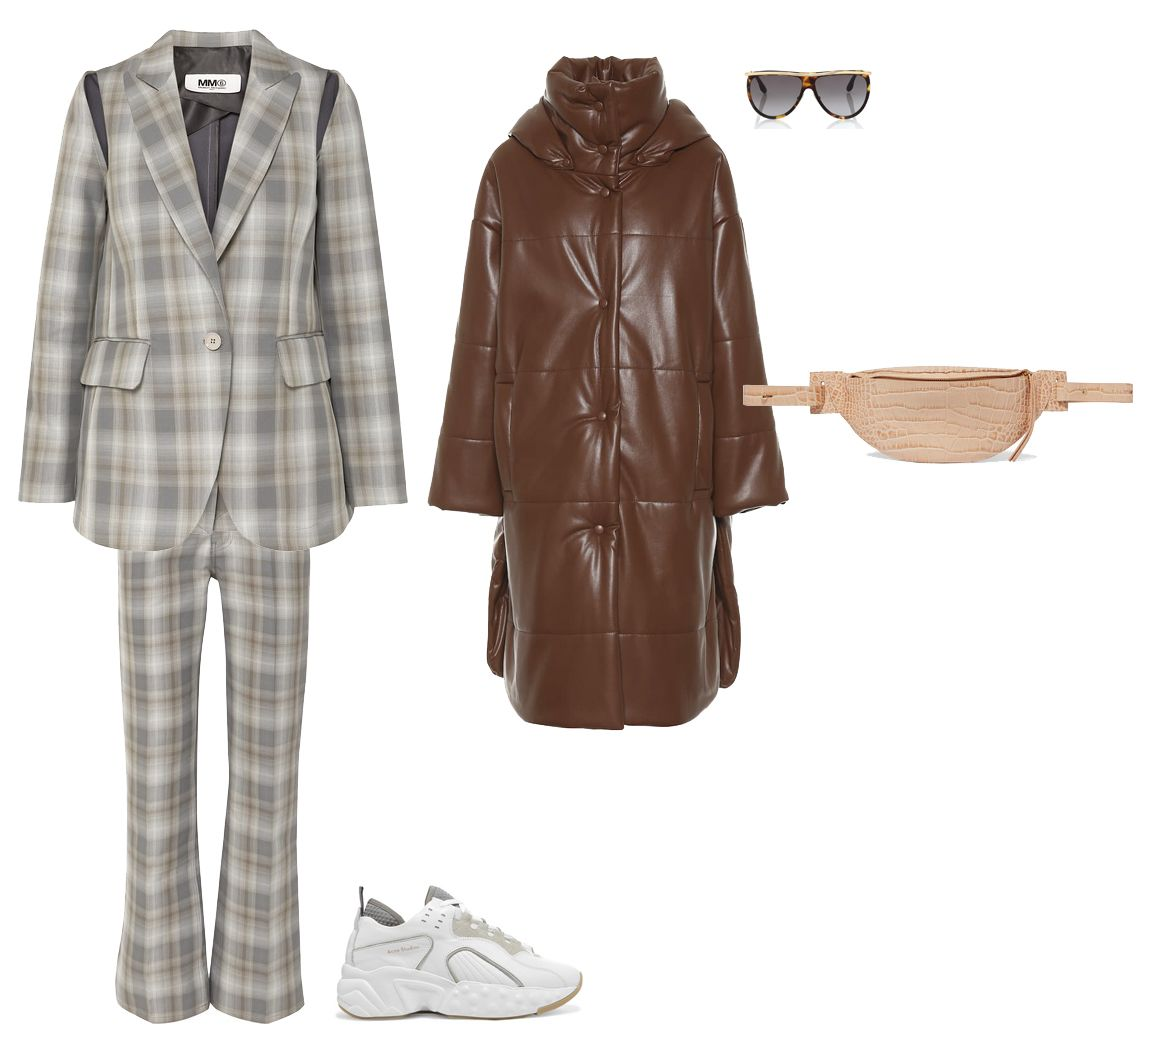 leonie-hanne-inspired-outfit-paris-haute-couture-spring-2019